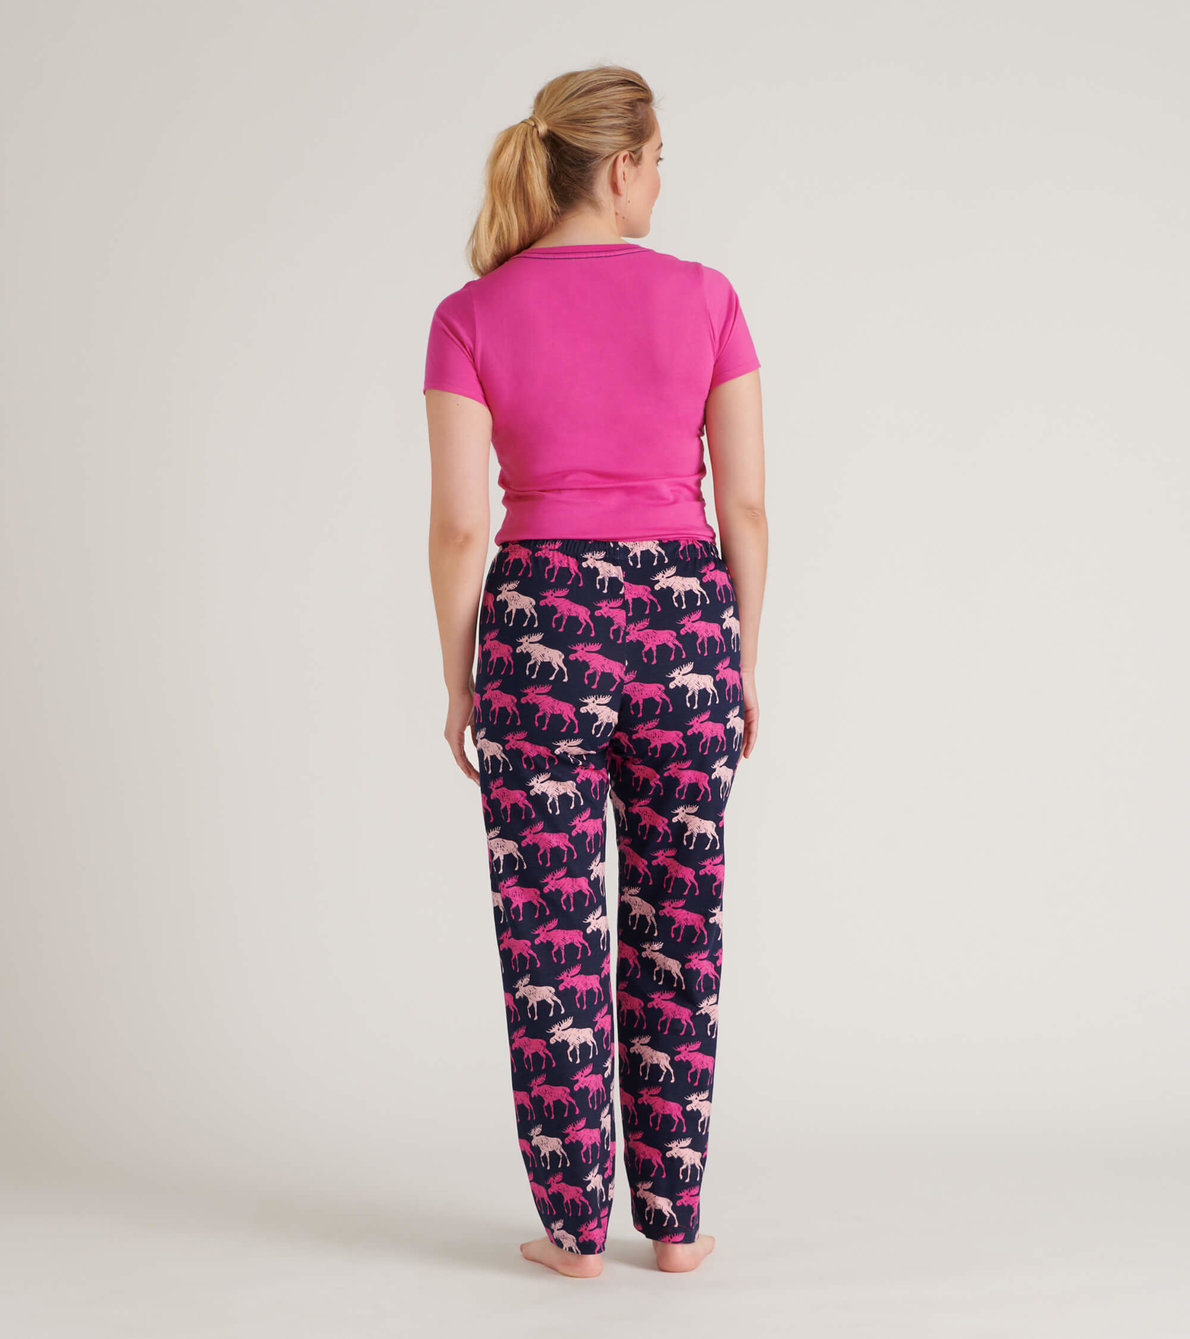 View larger image of Cottage Moose Women's Tee and Pants Pajama Separates